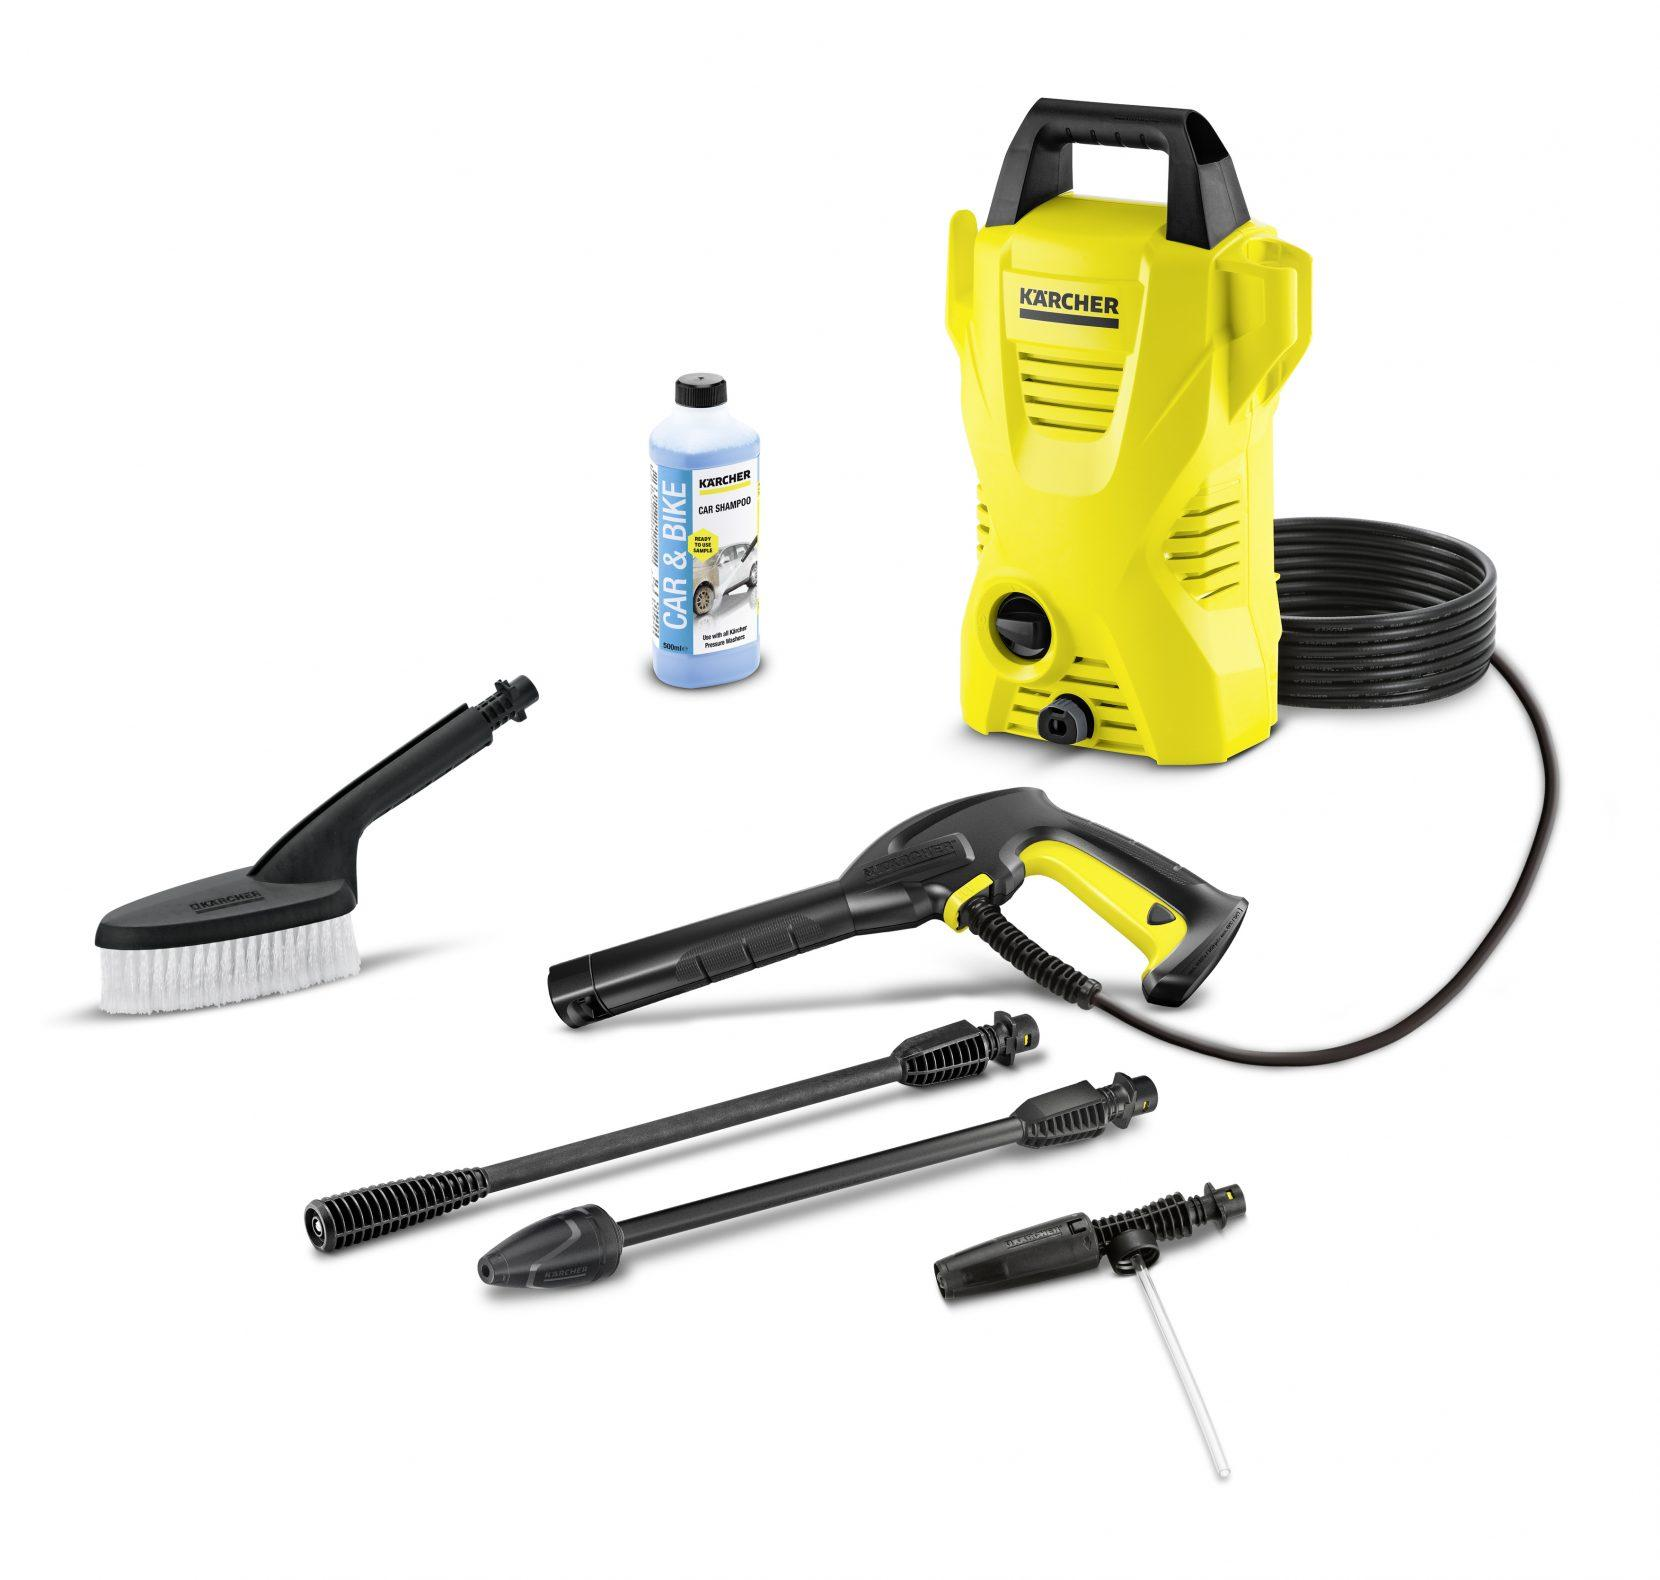 K2 CAR COMPACT KARCHER PRESSURE WASHER 110BAR MAX WATER PRESSURE, WITH ACCESSORIES – GERMANY